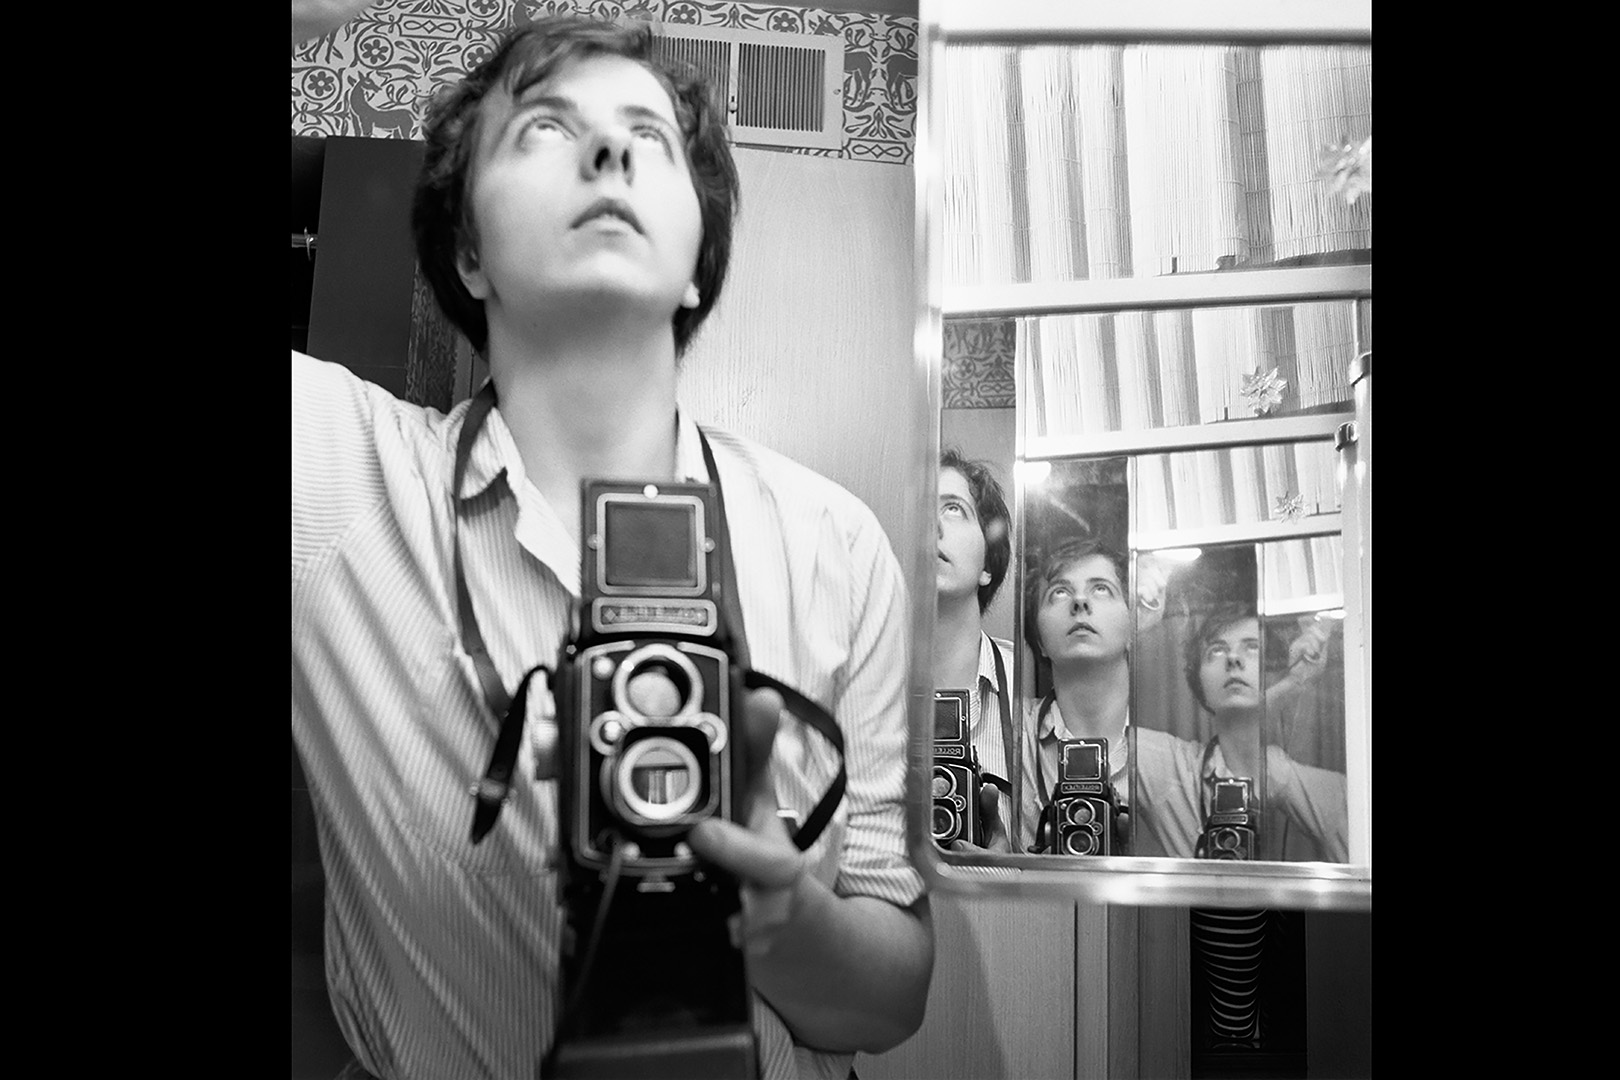 Self Portrait. Vivian Maier, 1956.